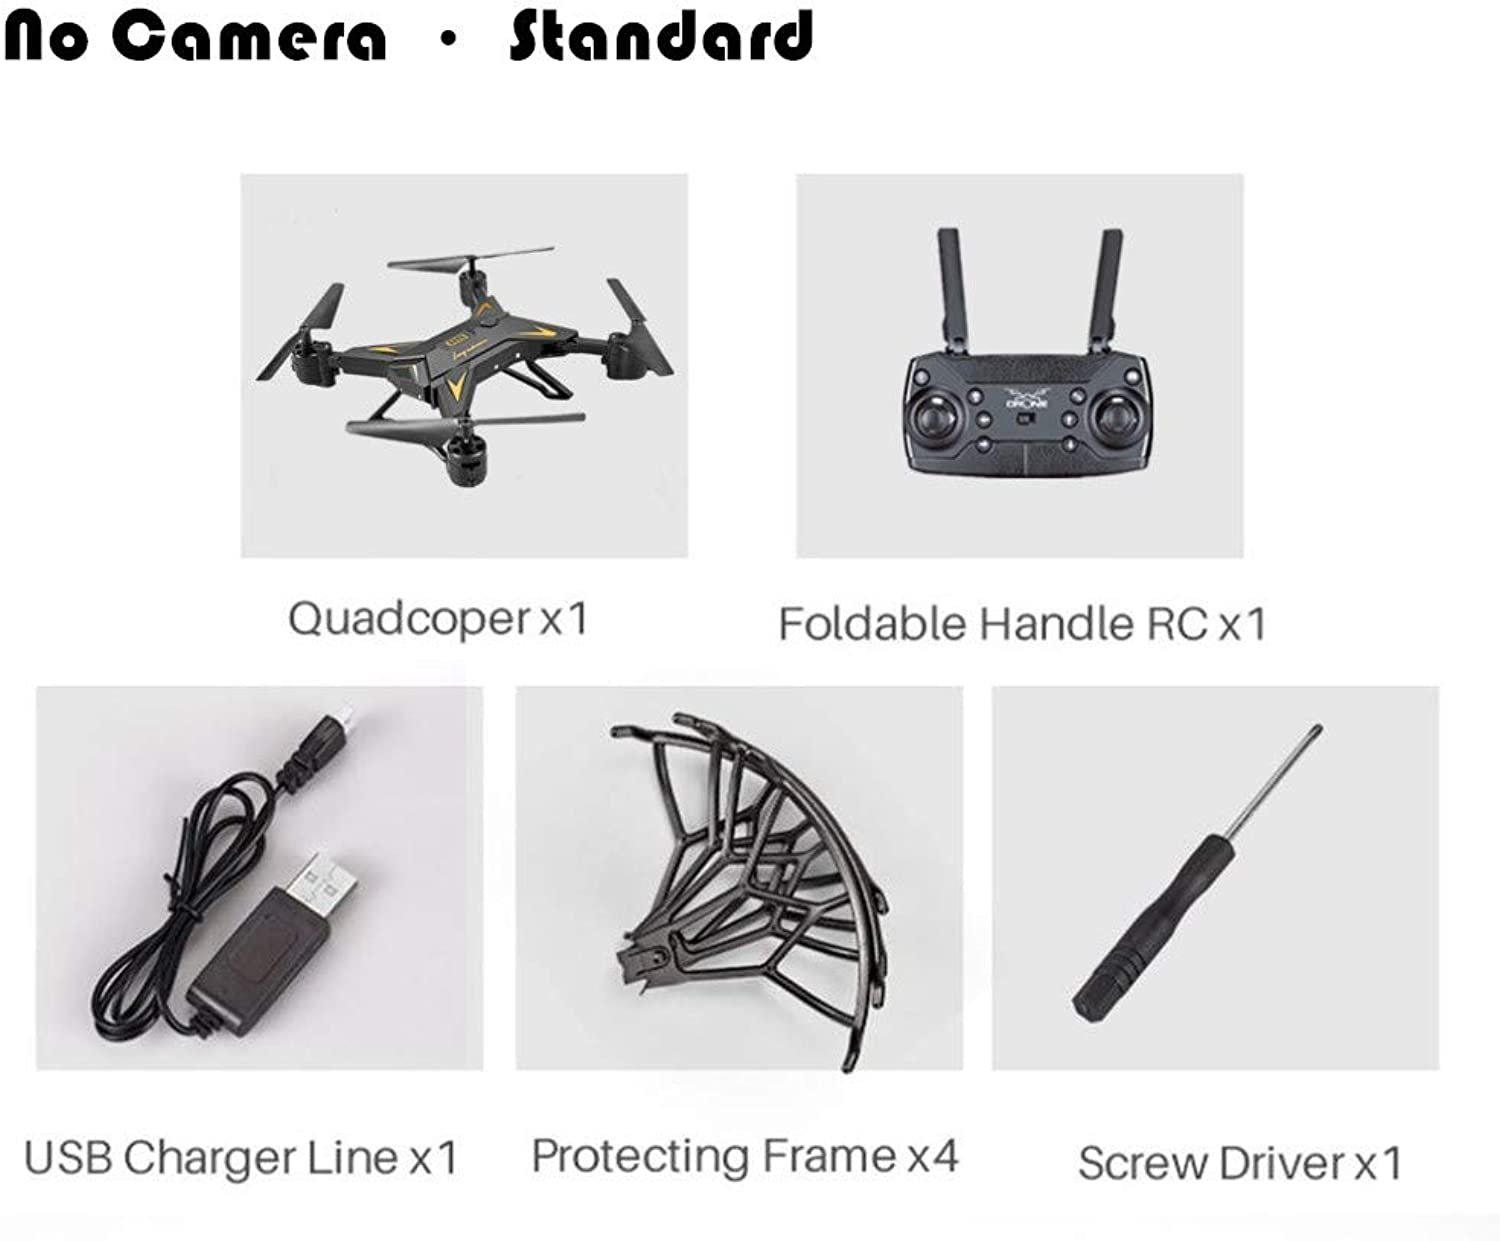 Generic Professional KY601S HDRemote Control Quadcopter Camera Drone Helicopter 4 Channel Long Lasting Foldable Arm Aircraft ExtraBettry Black Without Camera